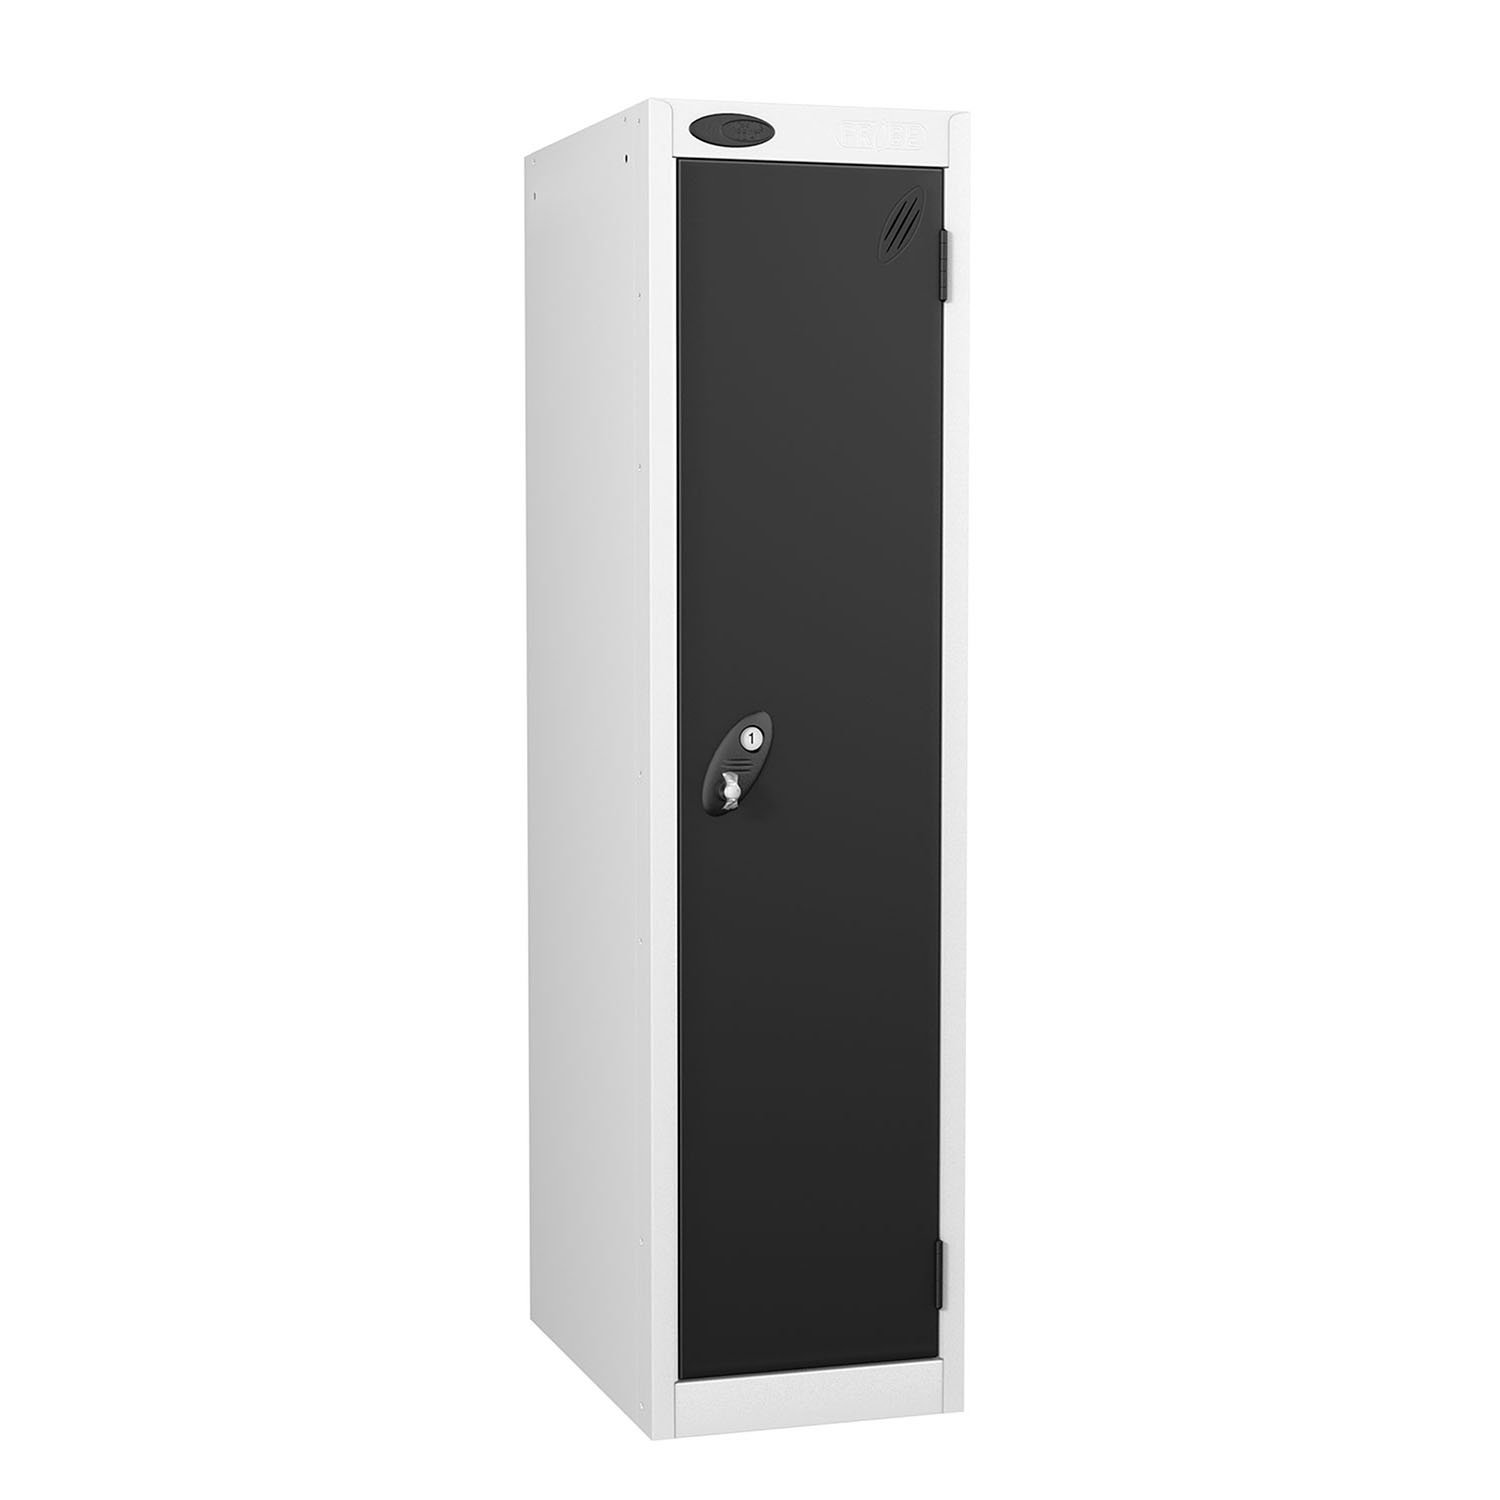 Probe 1 door low locker in black colour.